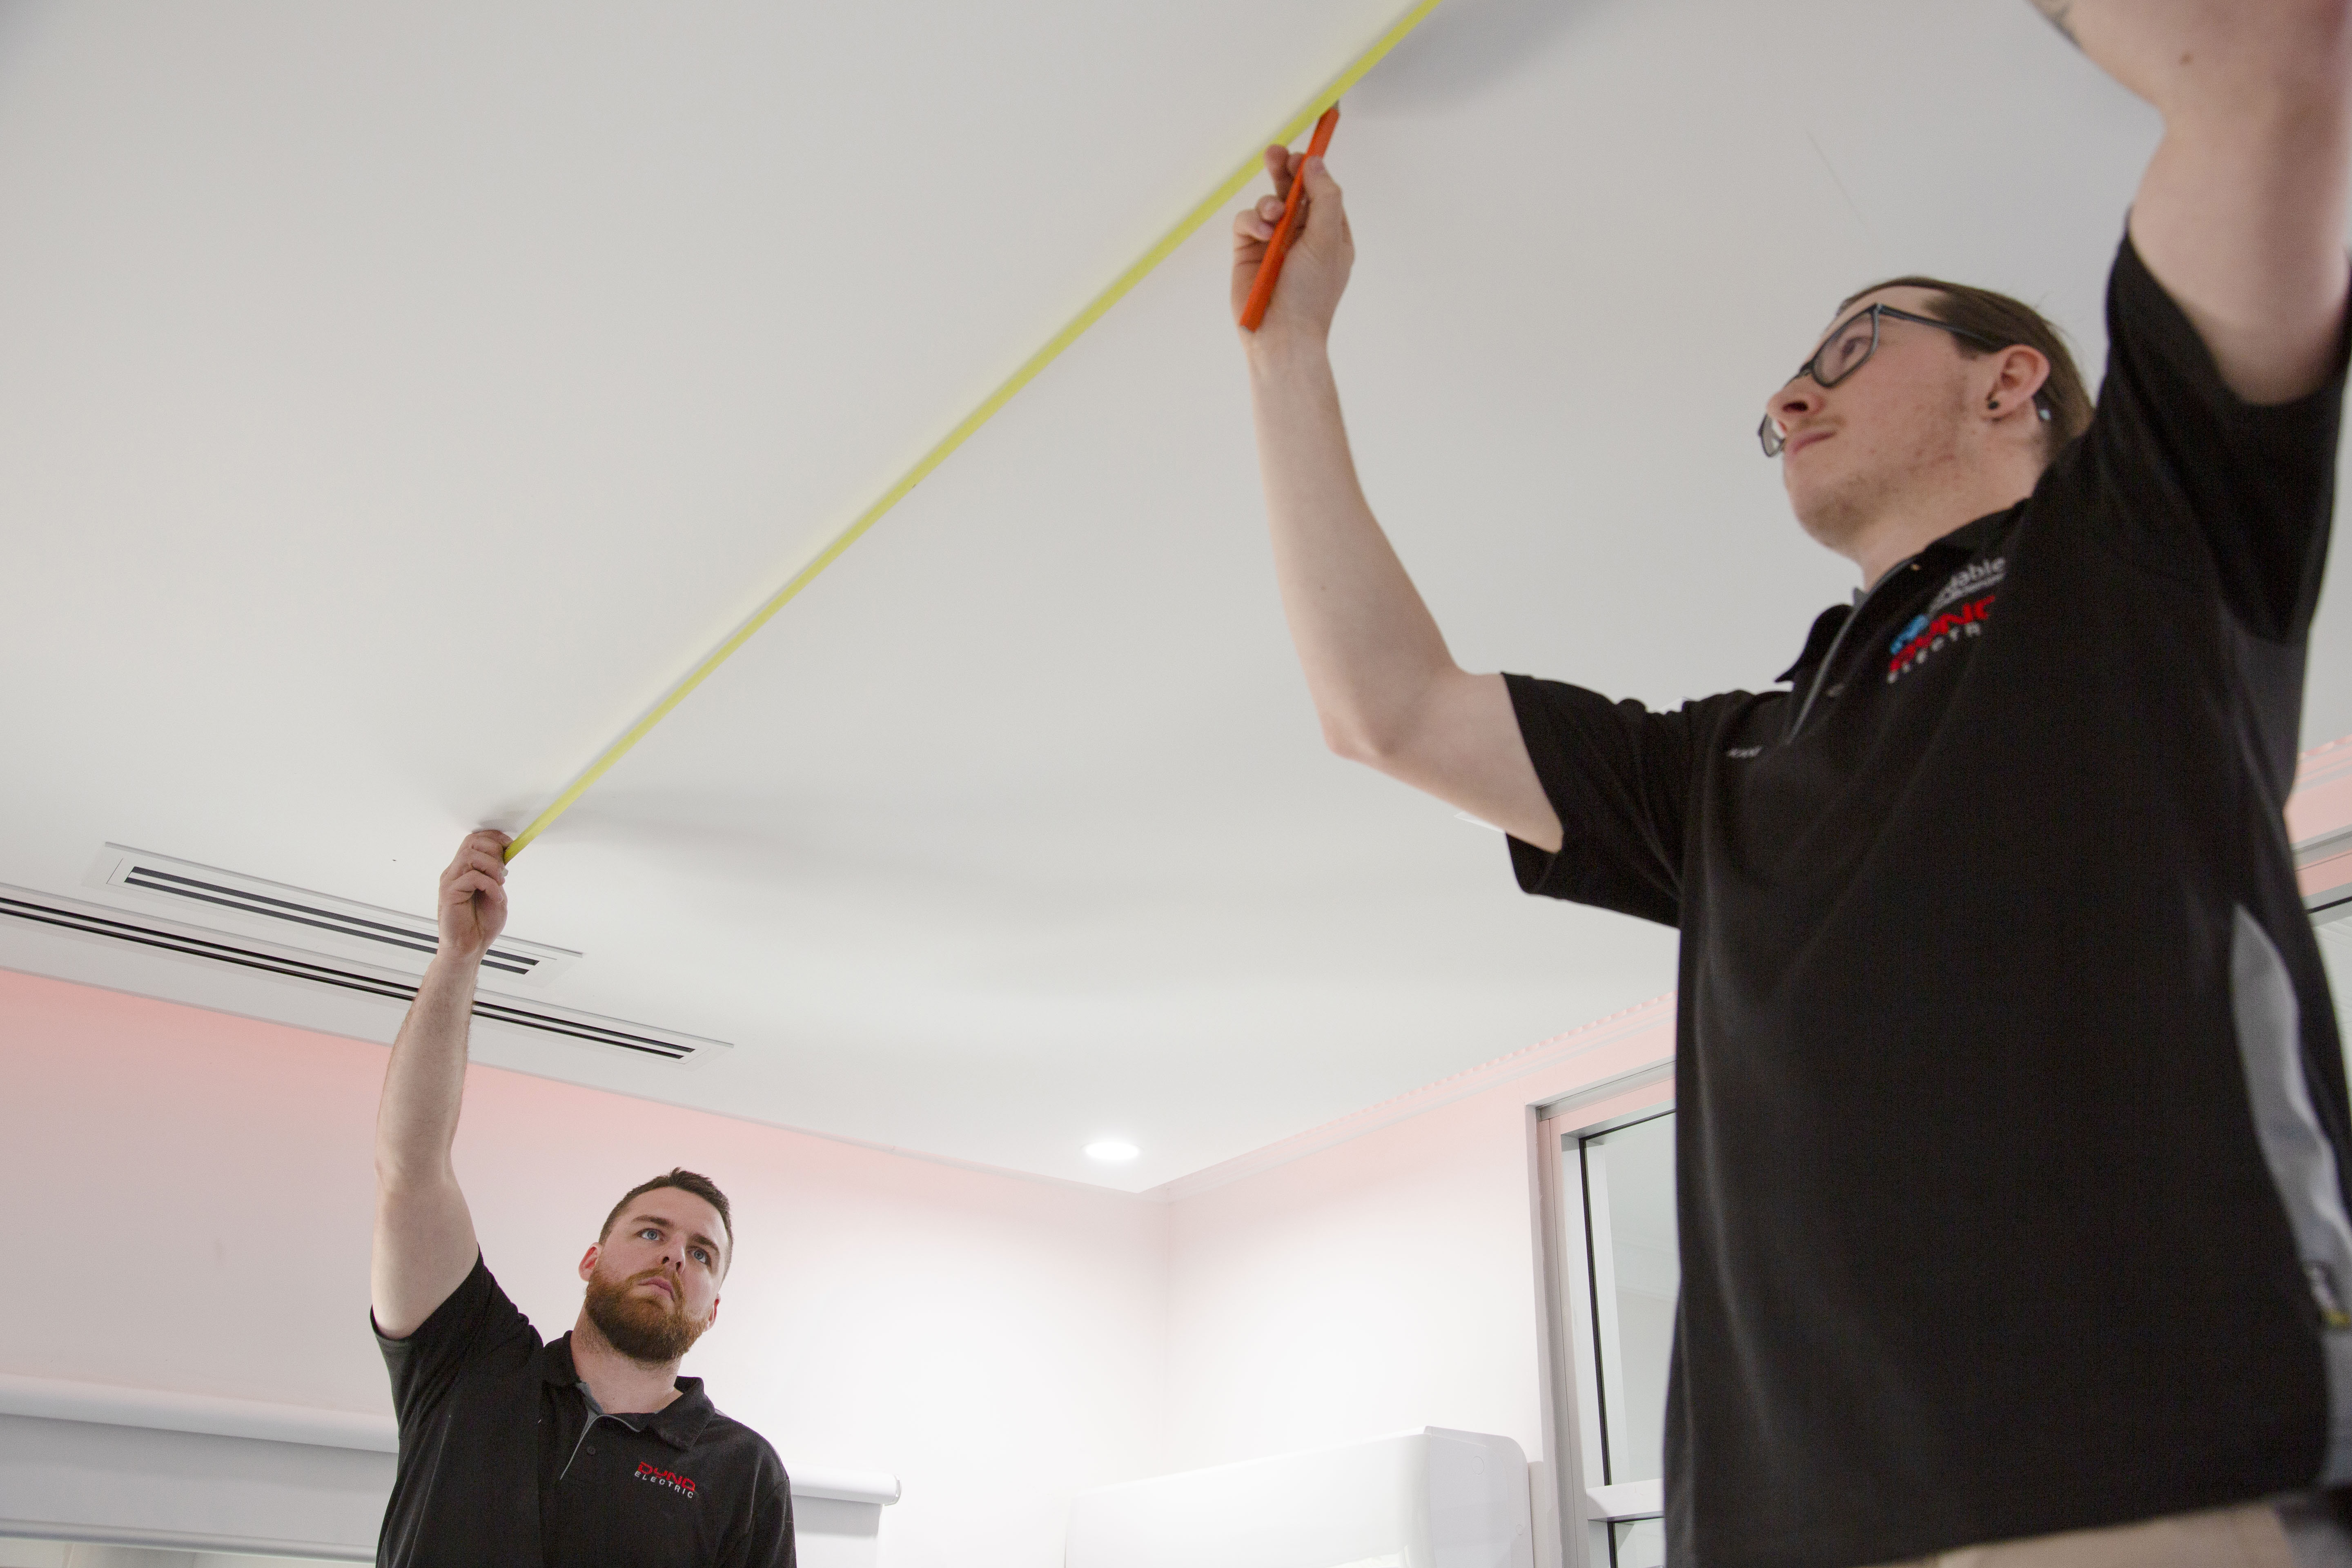 licensed electrician in Adelaide for Commercial Projects